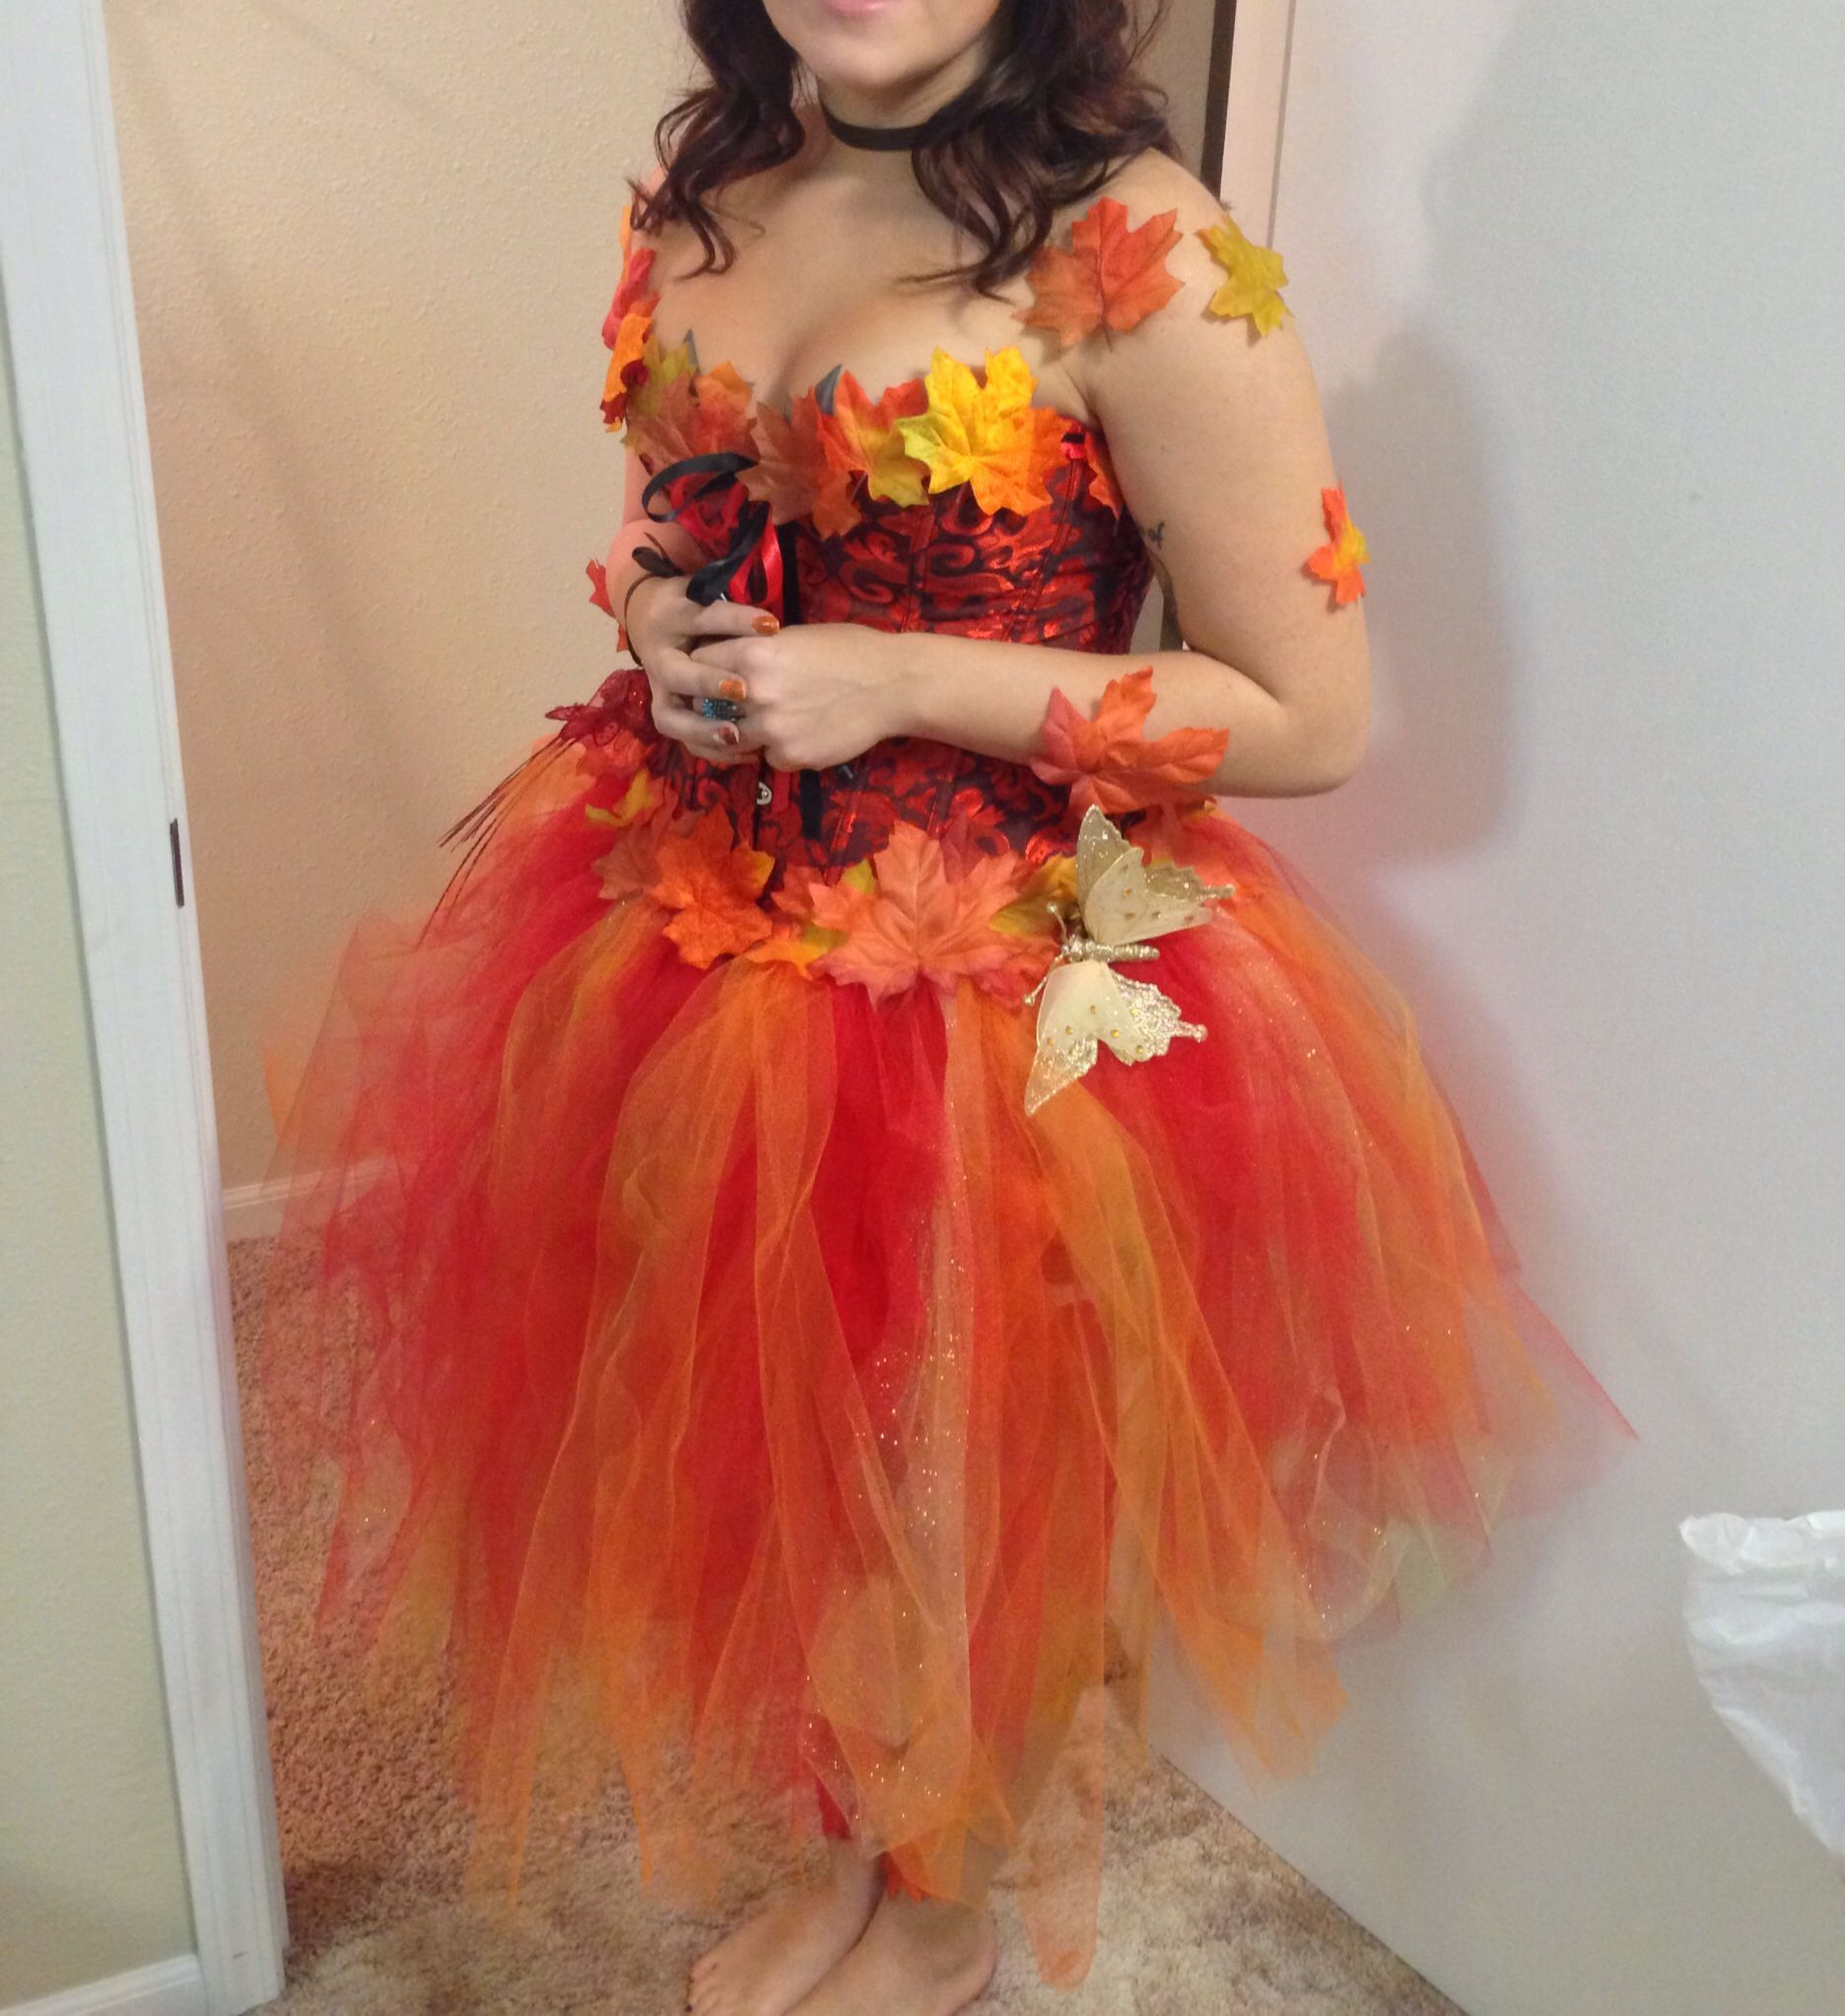 Mother Nature #Costume for Halloween. Supplies Needed 1. Colored tool (I used 1 spool red/1 spool orange, & partial spool gold glitter) 2. Chocolate Brown ribbon 1/2 - 1 in 3. Double side fabric tape 4. Fall craft leaves (garland or bag) 5. Scissors 6. Corset (mine via Amazon-$10) 7. Optional - animals, butterflies, etc. Google how to make a non sew tutu, super easy! Use tape to put leaves on trim of costume & all over arms & legs & body. Message if u need/want more help! #fabrictape